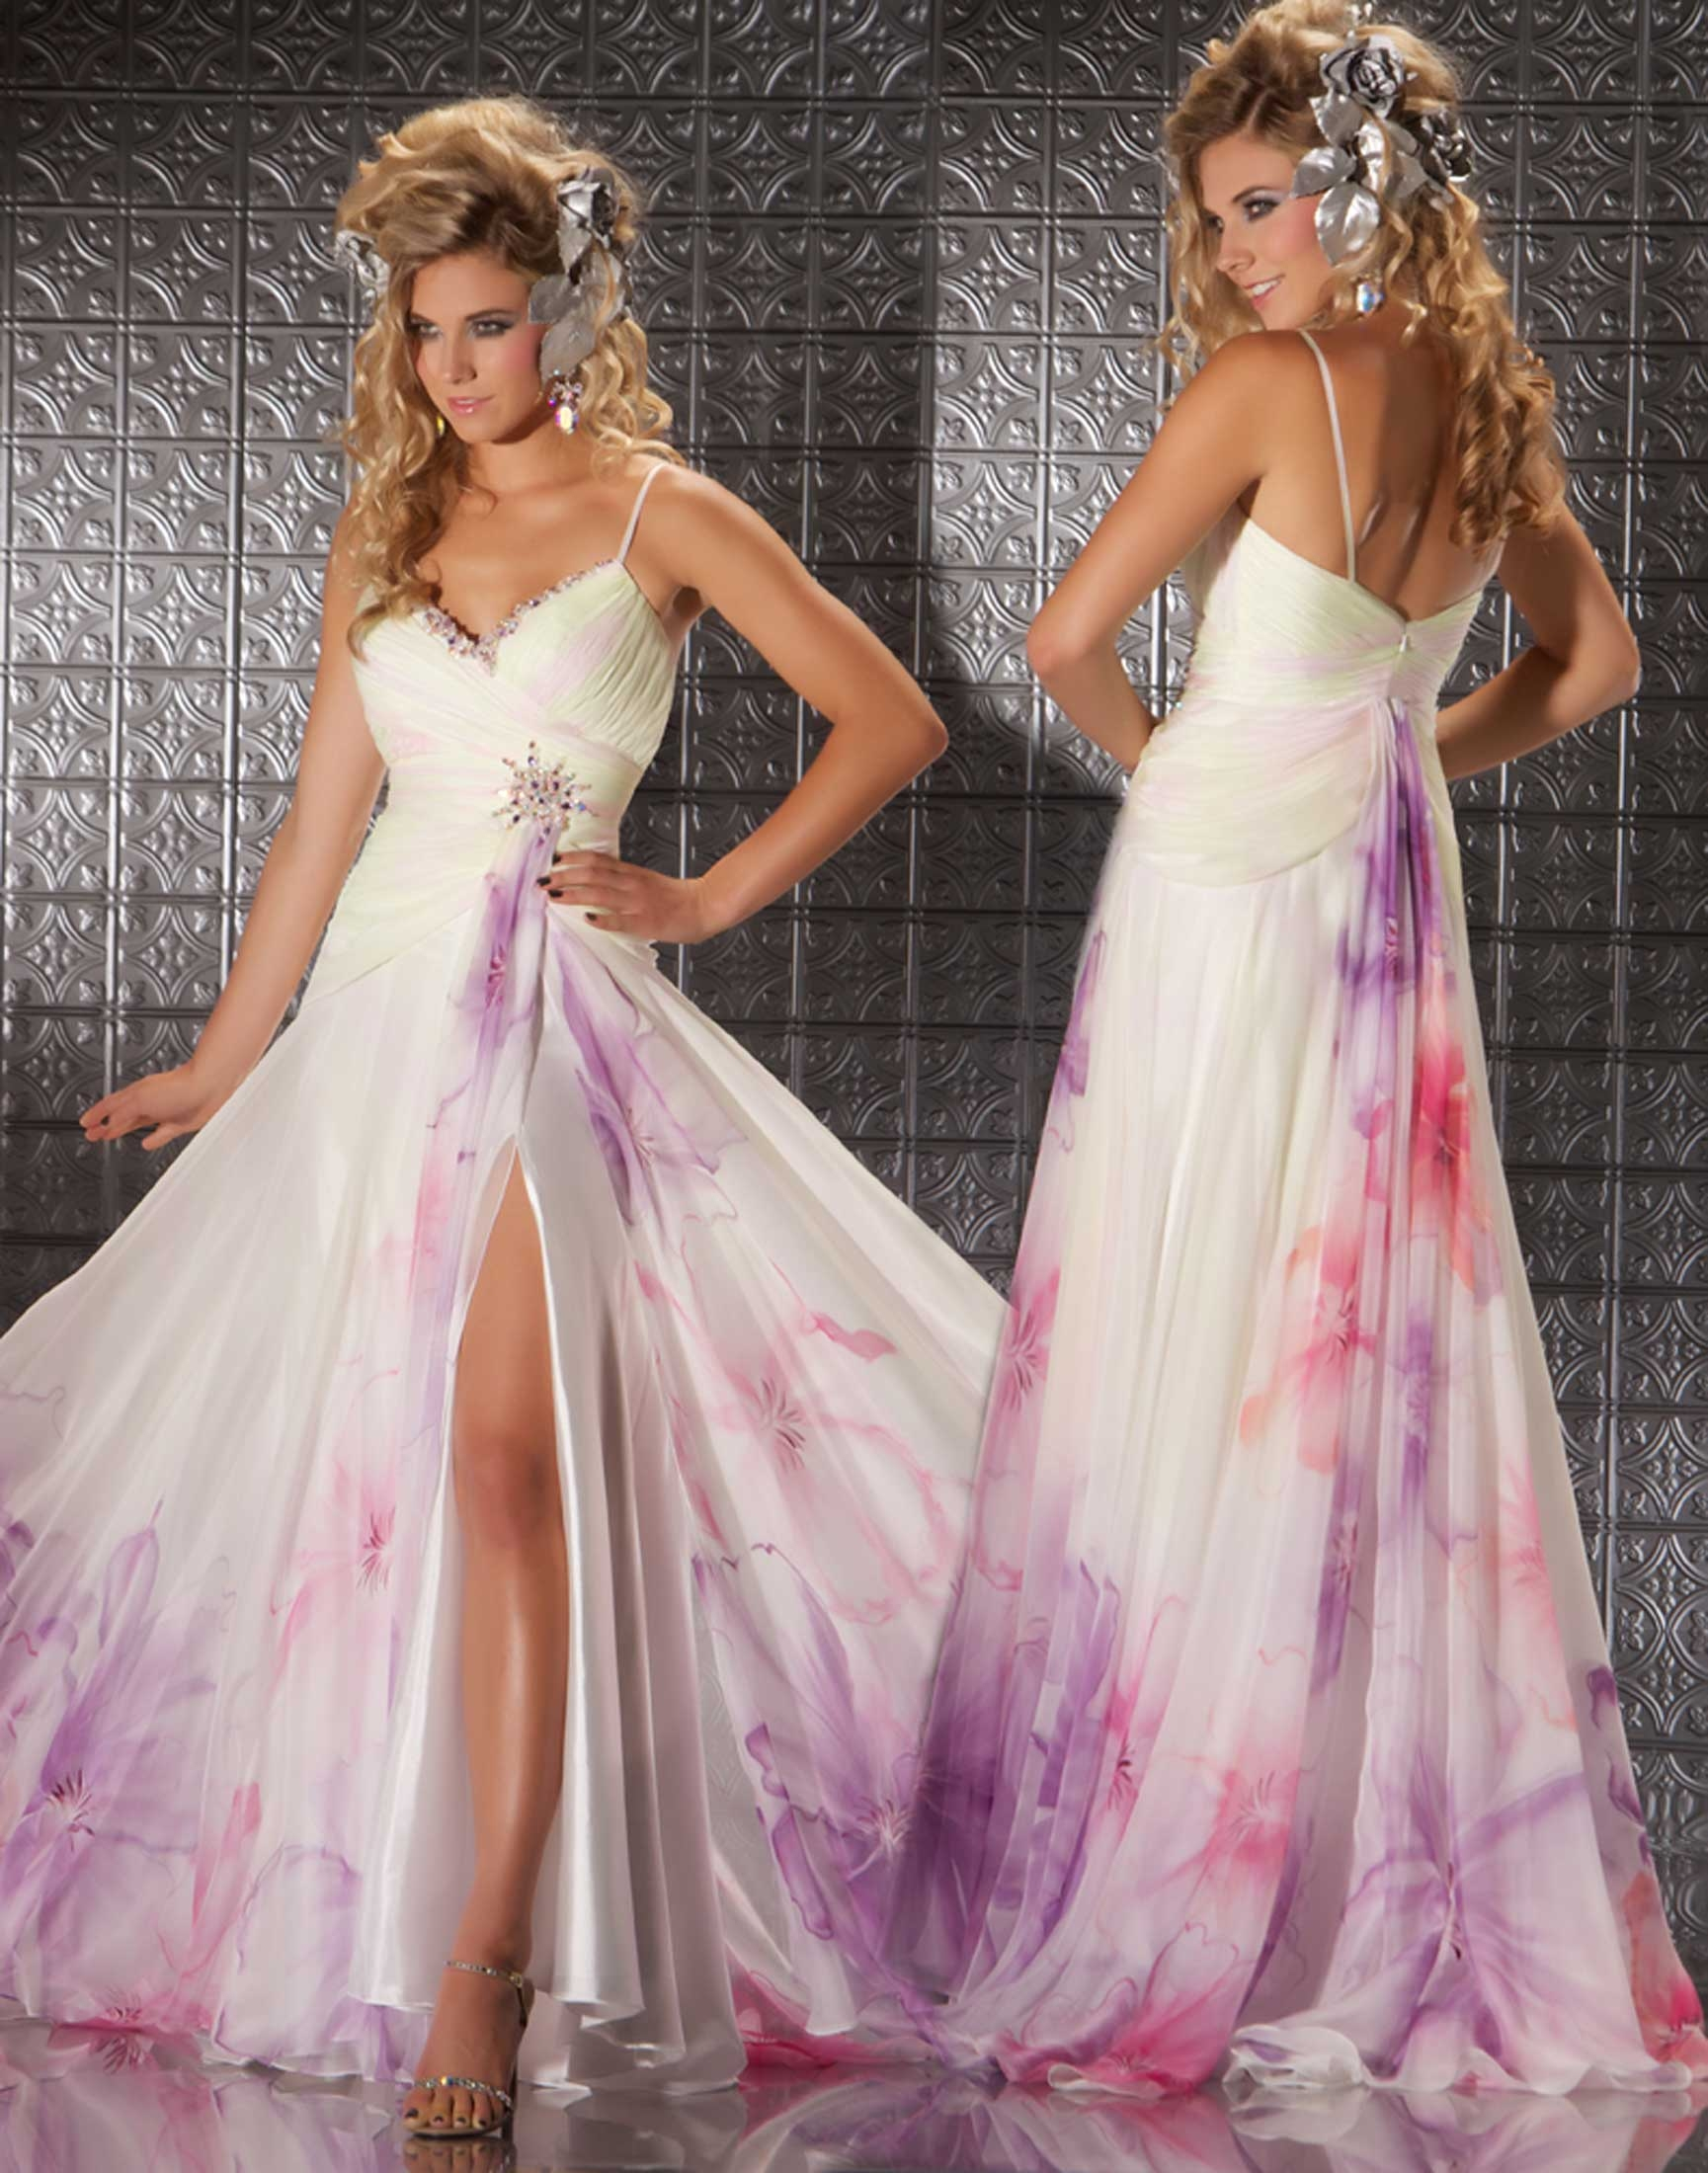 6603aed233c Pretty White Dress Splashed With Purple   Red Pictures